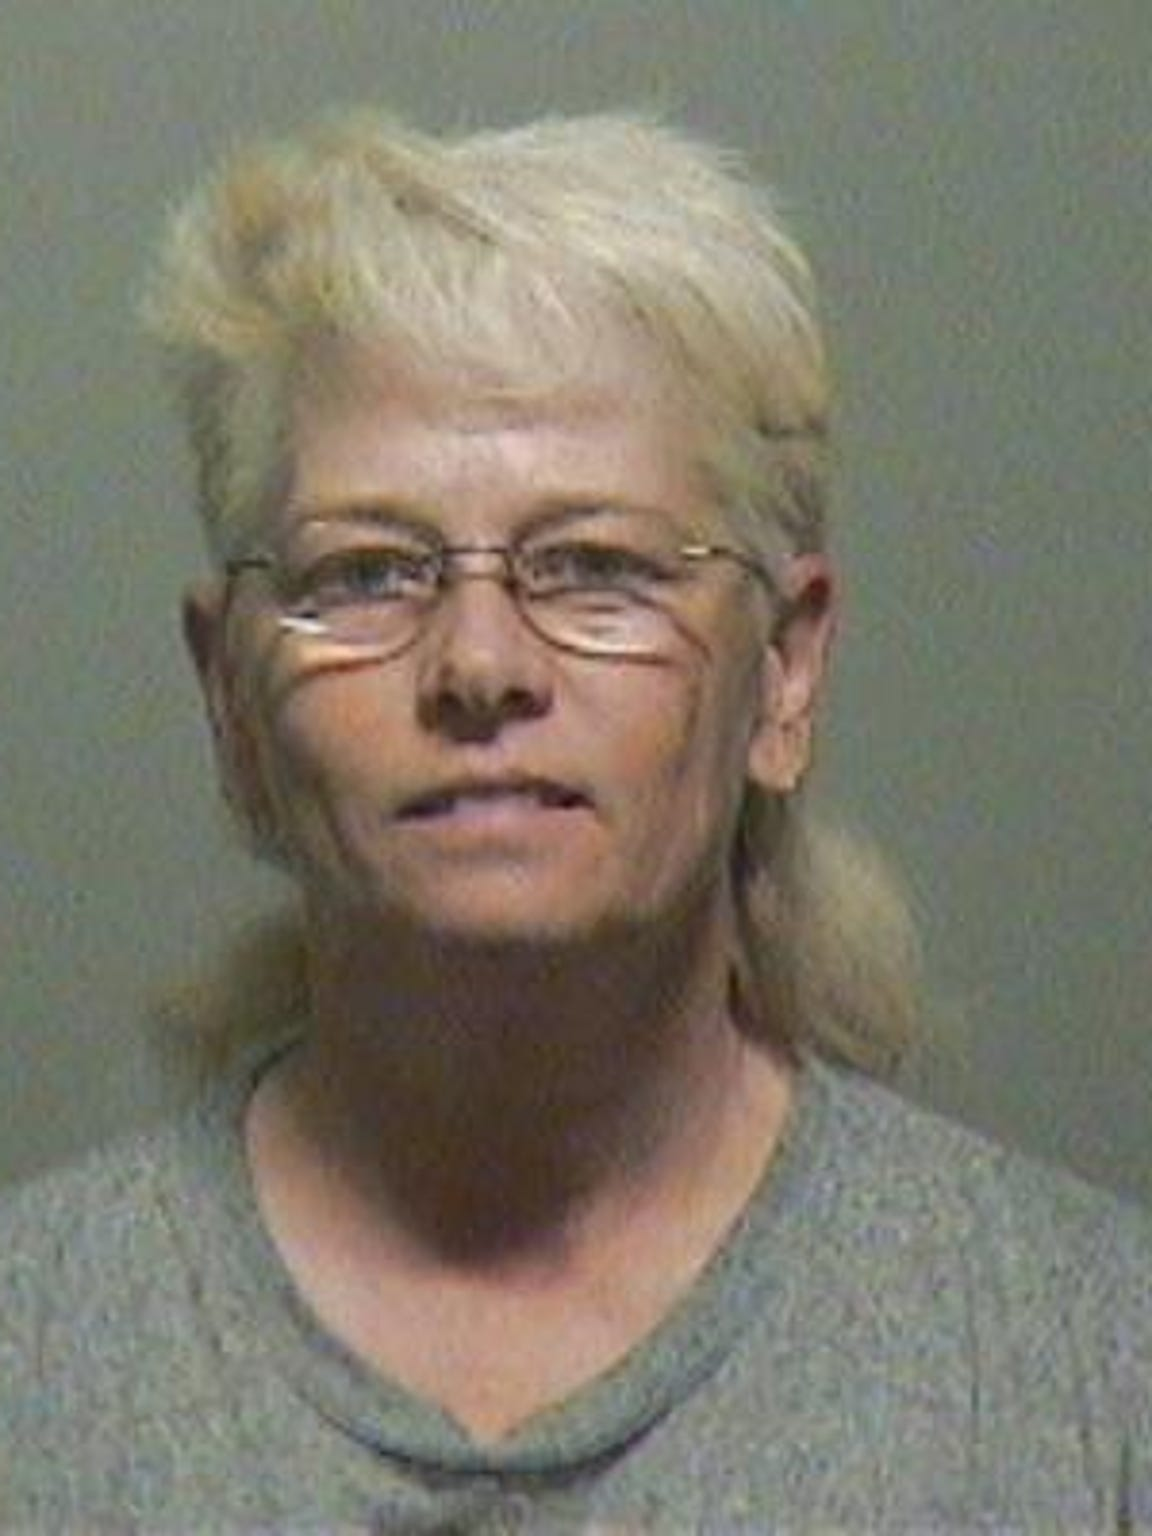 Dianna Siveny was 48 years old when her domestic partner